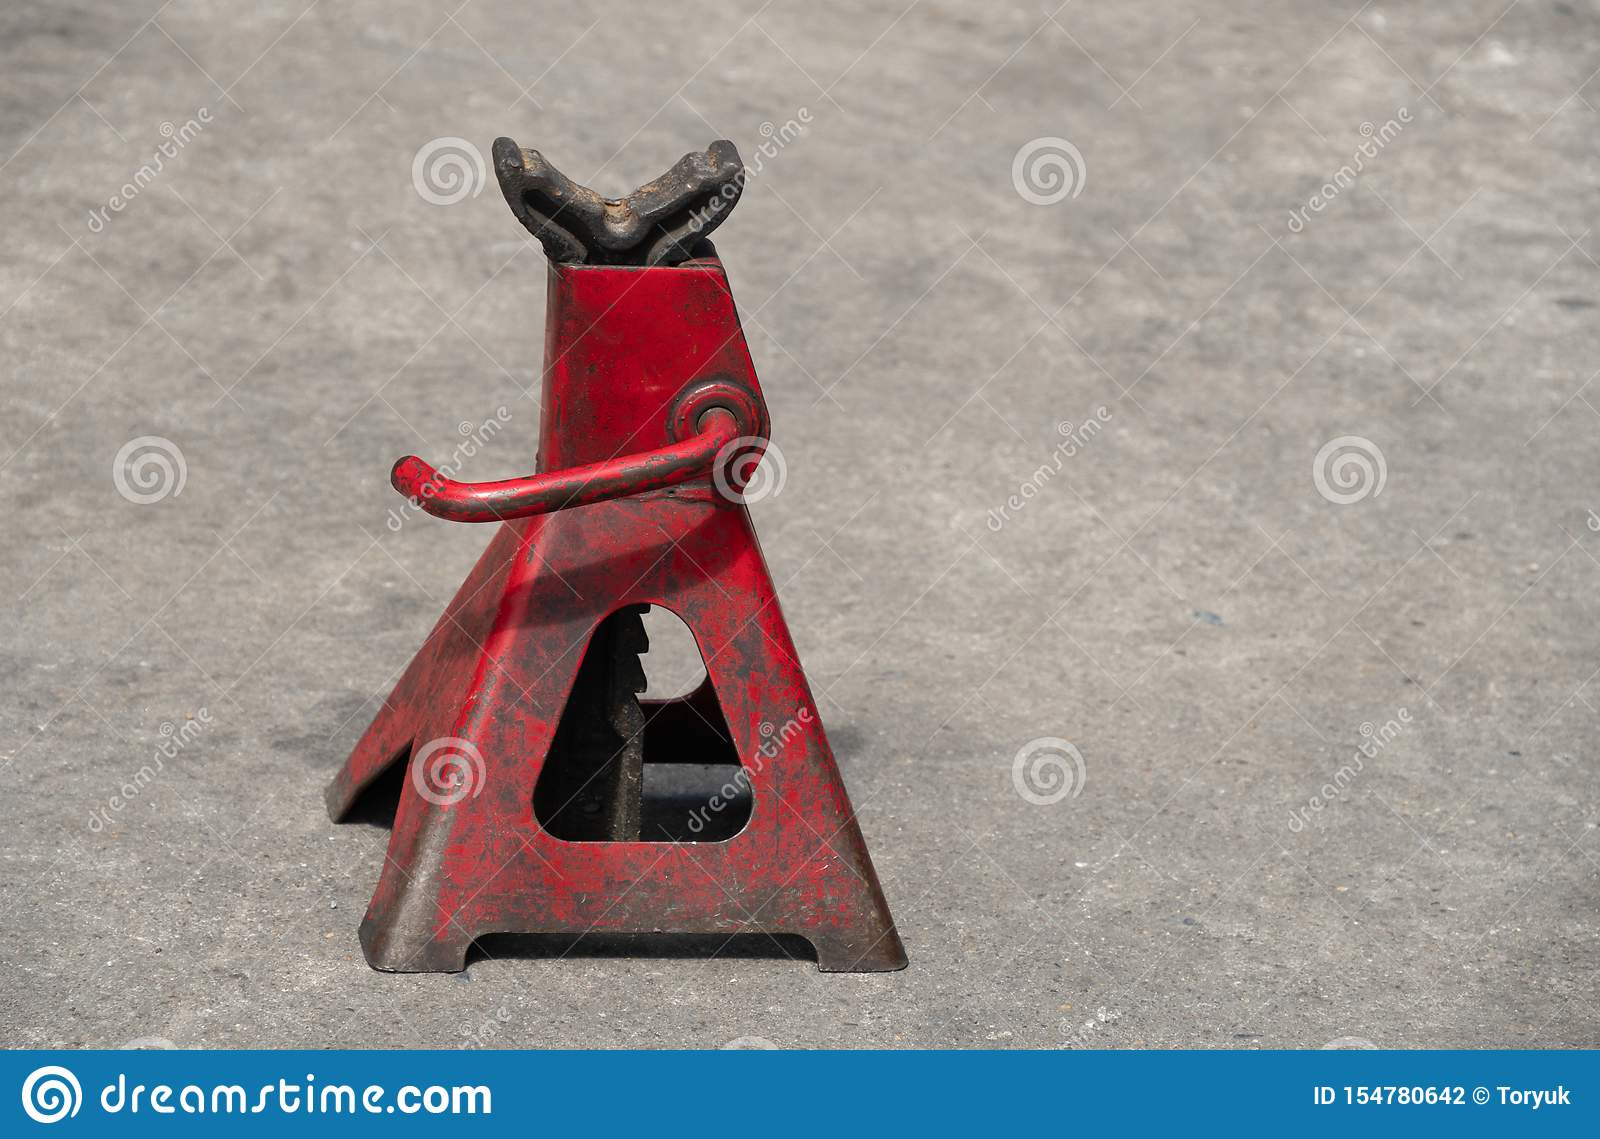 Used red high lift jack stand